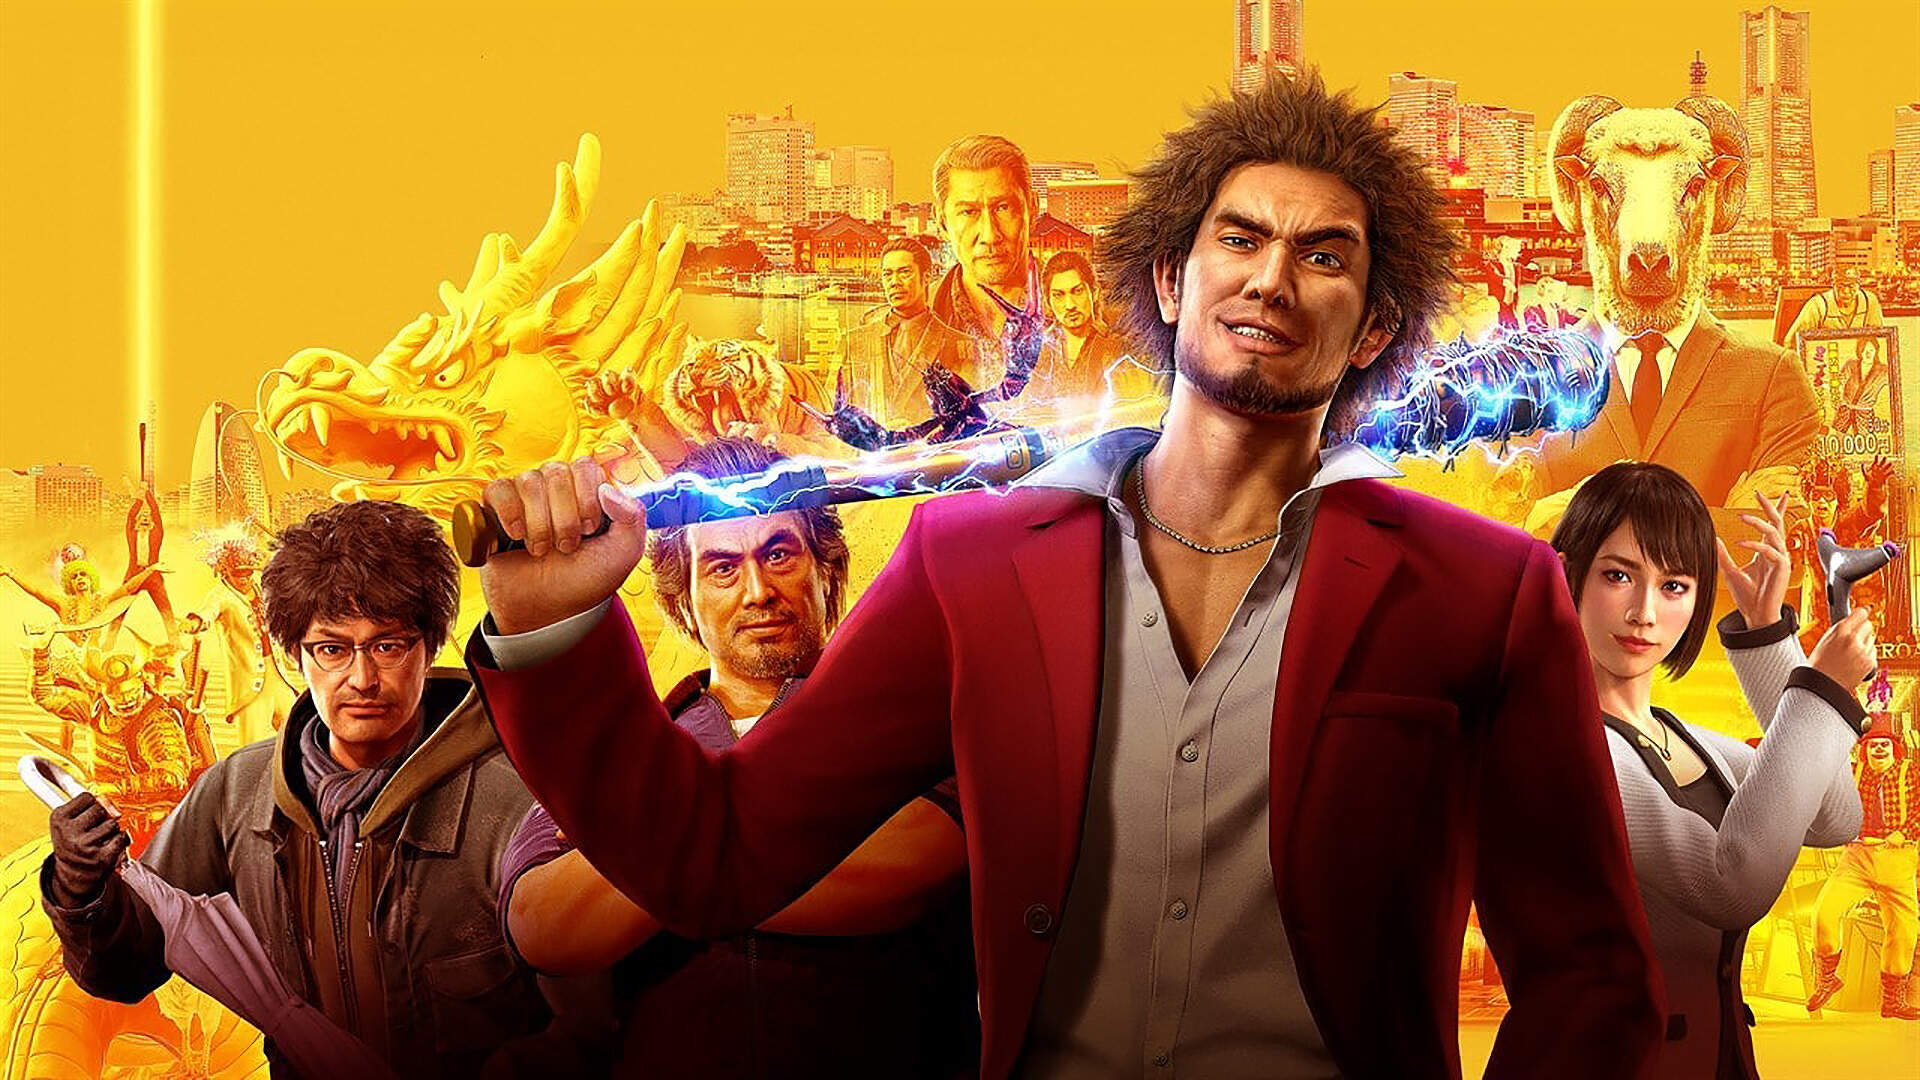 Yakuza: Like a Dragon Is a Great JRPG About Middle-Aged Gig Workers